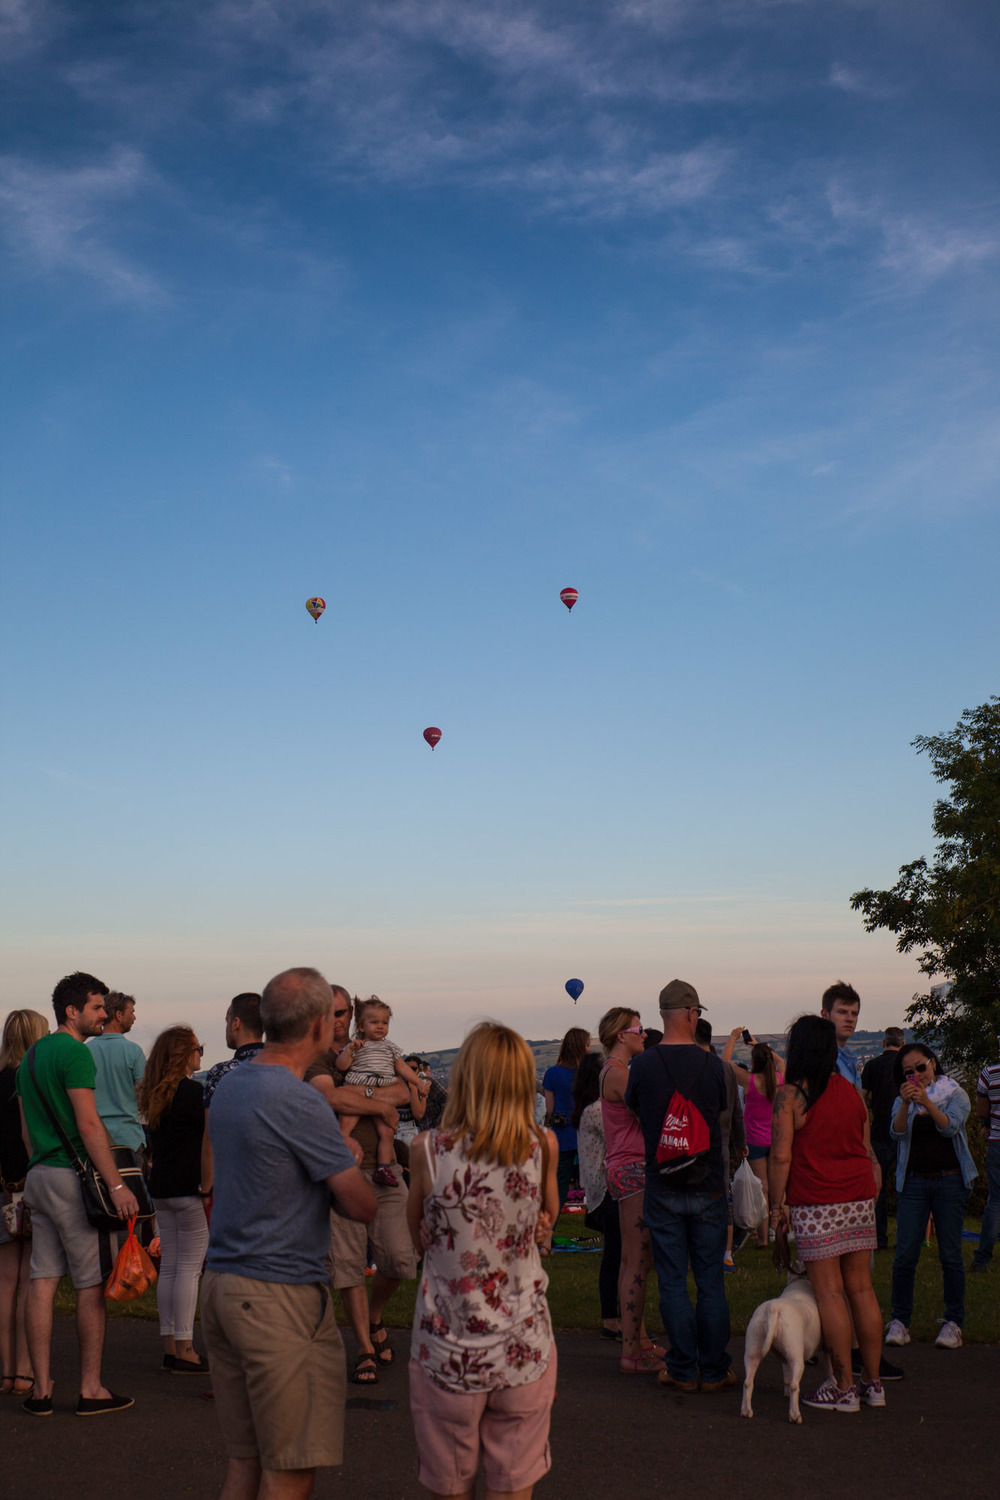 Punters enjoy the sunset on the hill as some of the balloons sail overhead.